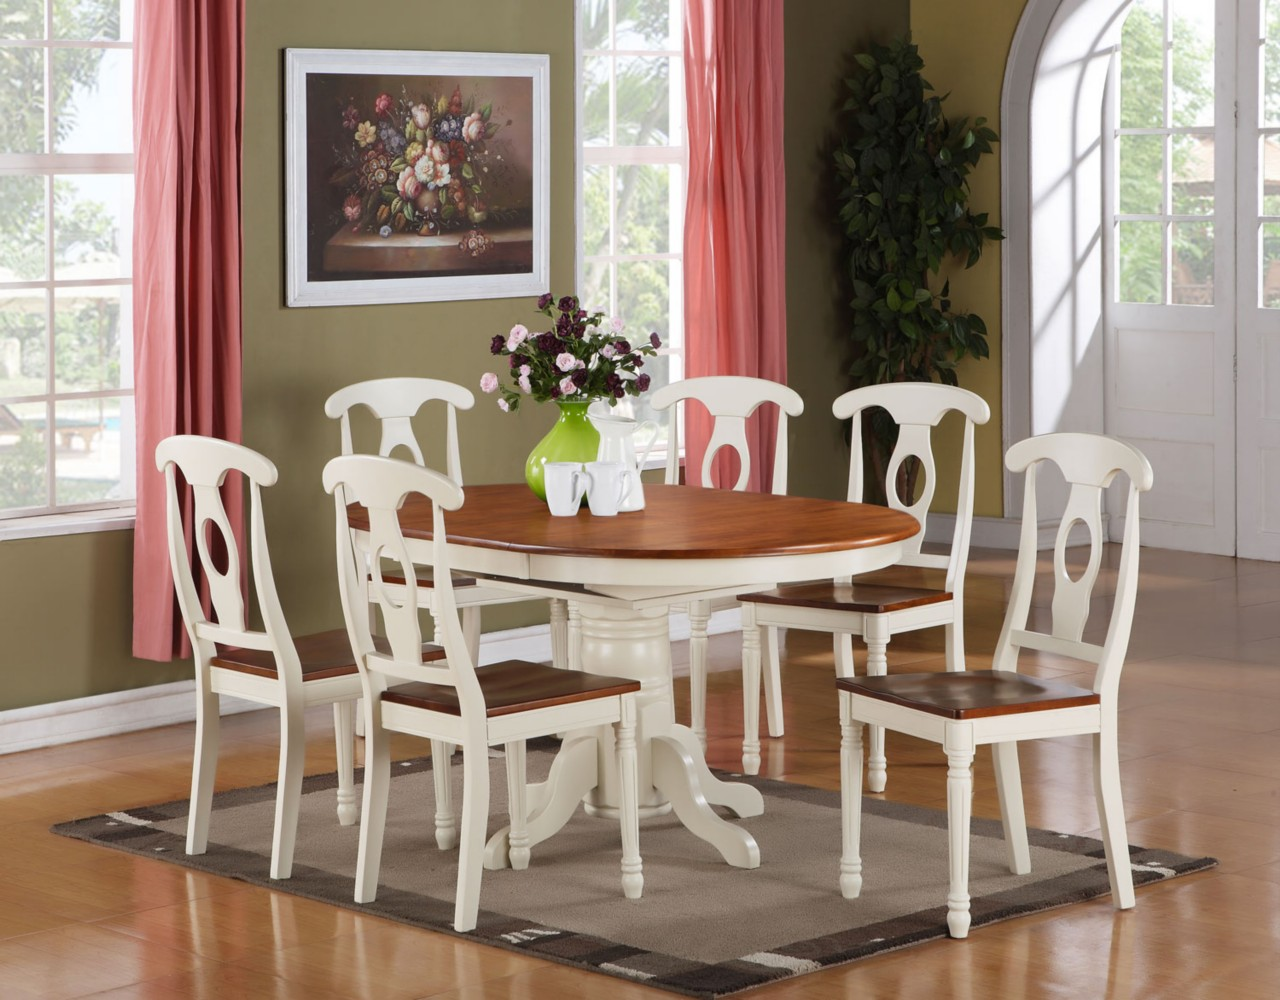 5pc oval dinette kitchen dining room set table with 4